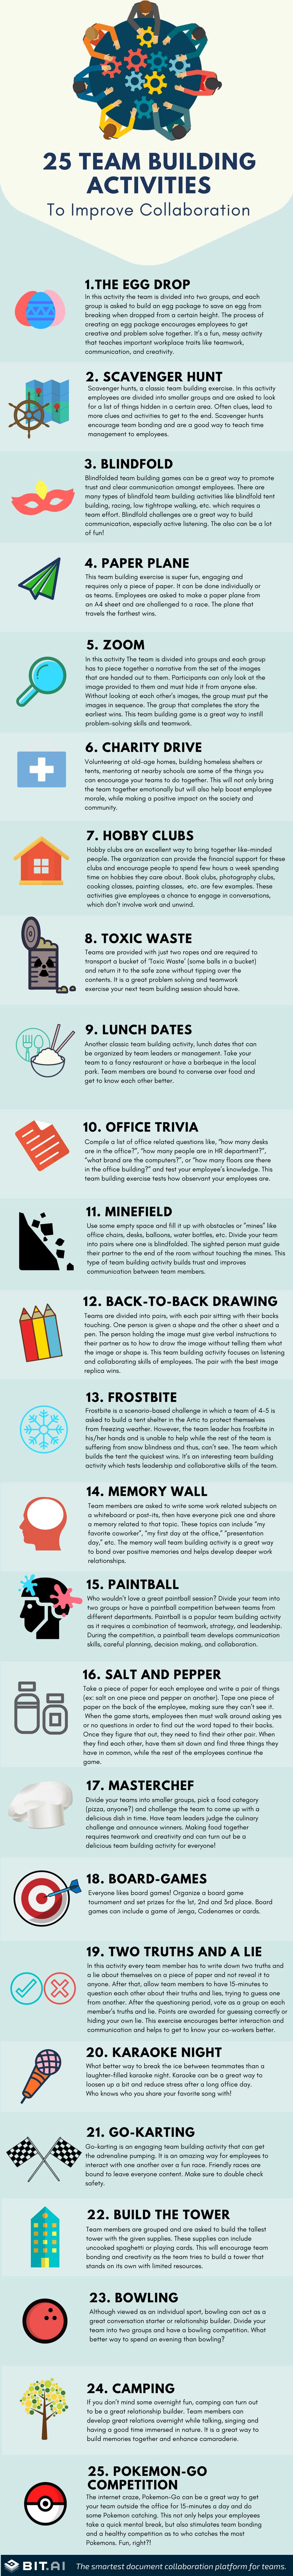 25 team building activities (infographic) #teamwork #collaboration